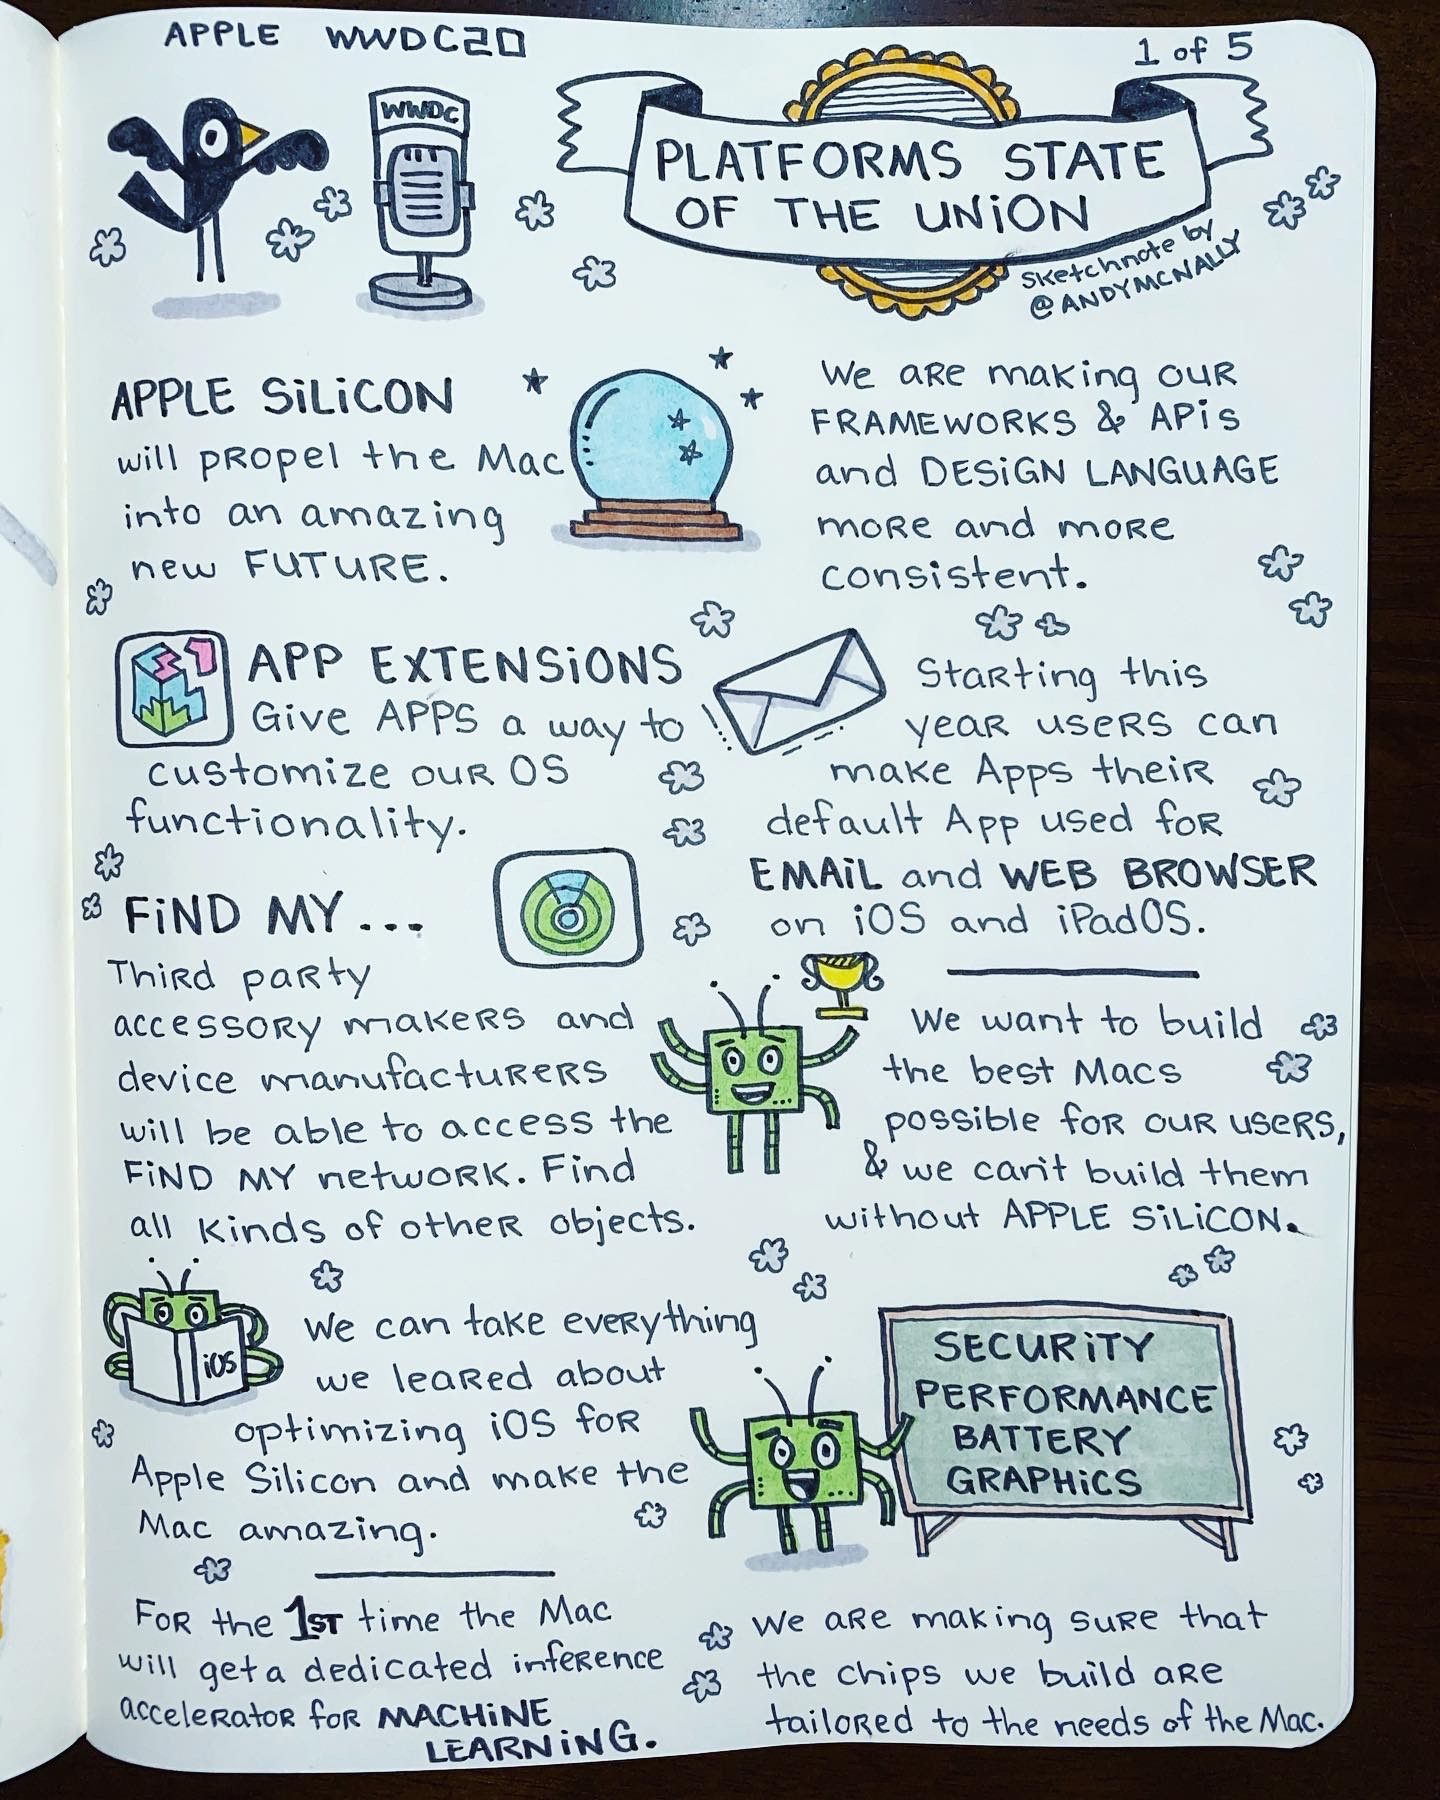 Apple Platforms State of the Union - WWDC 2020 drawing 1 of 5